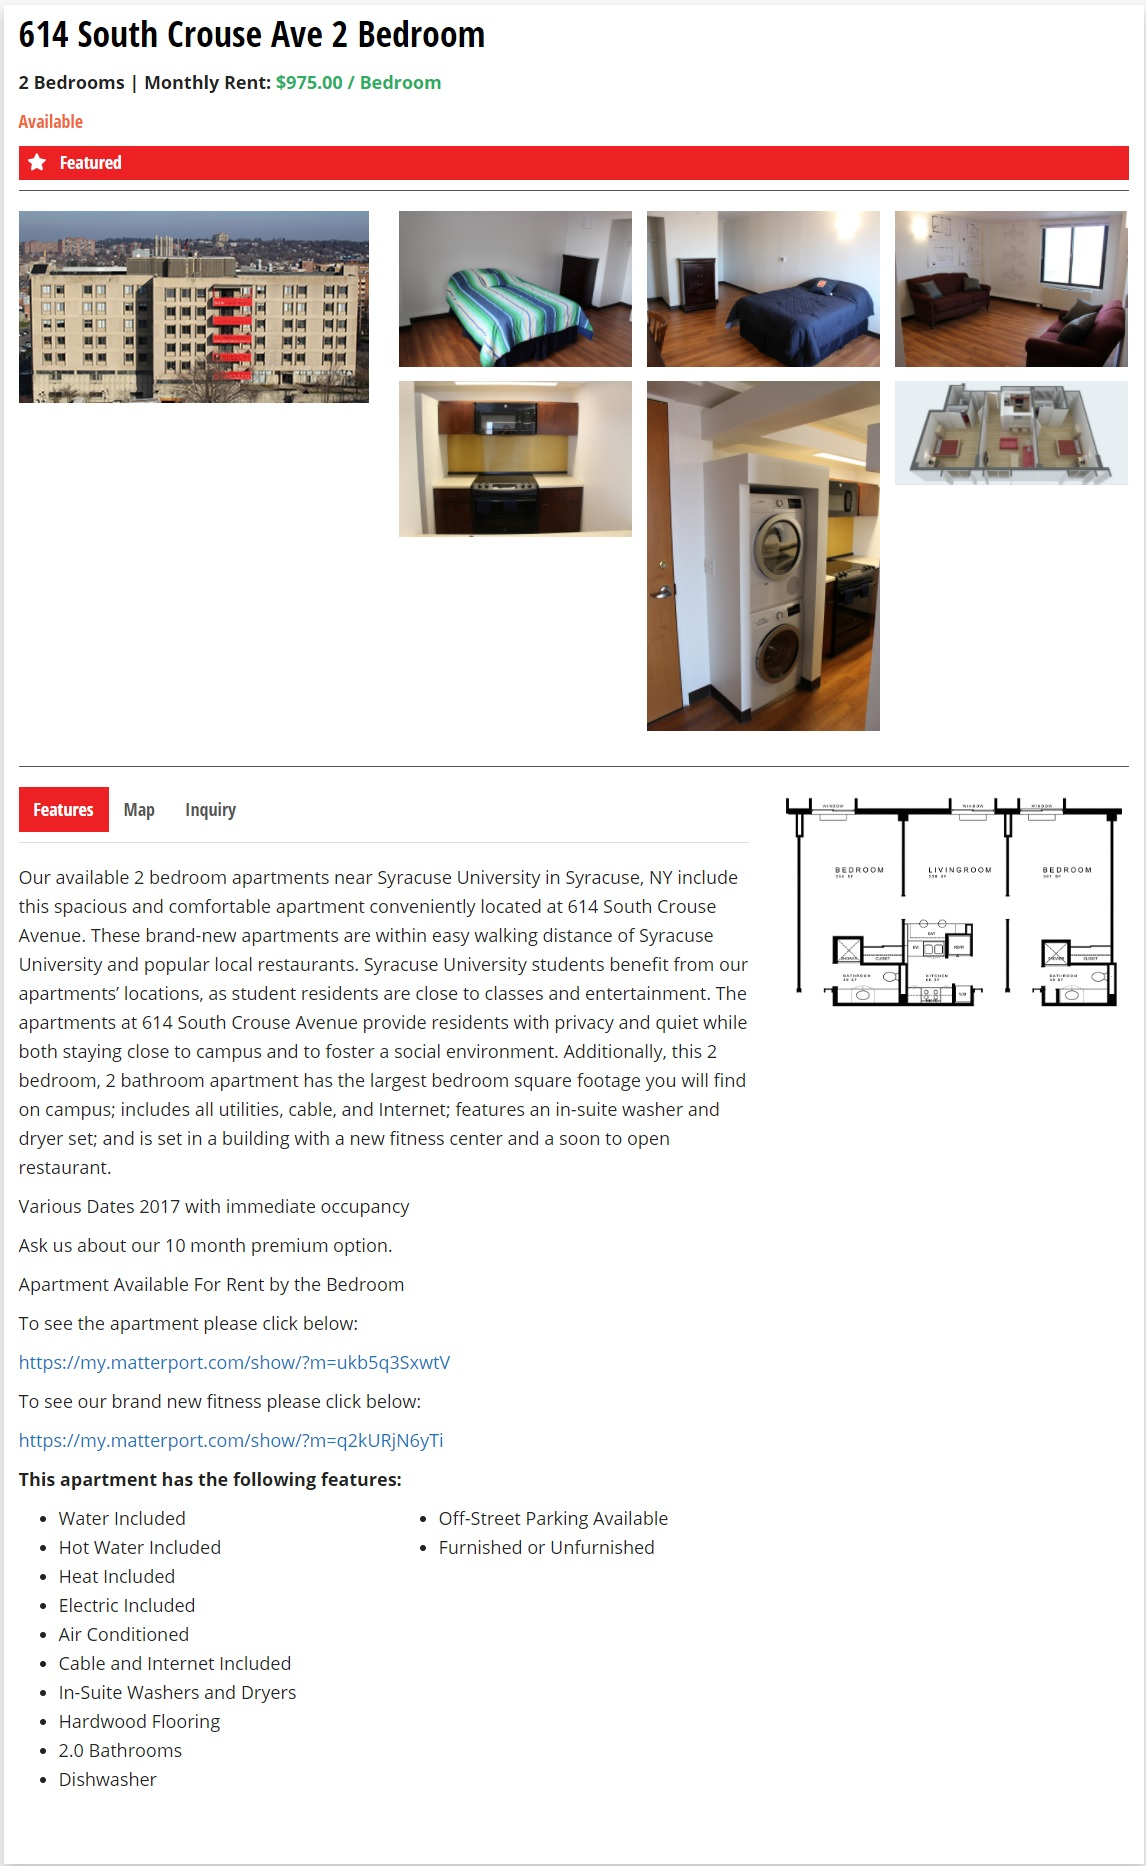 Apartment Website Design Property Student Apartments Website Design  Apartment Web Design .